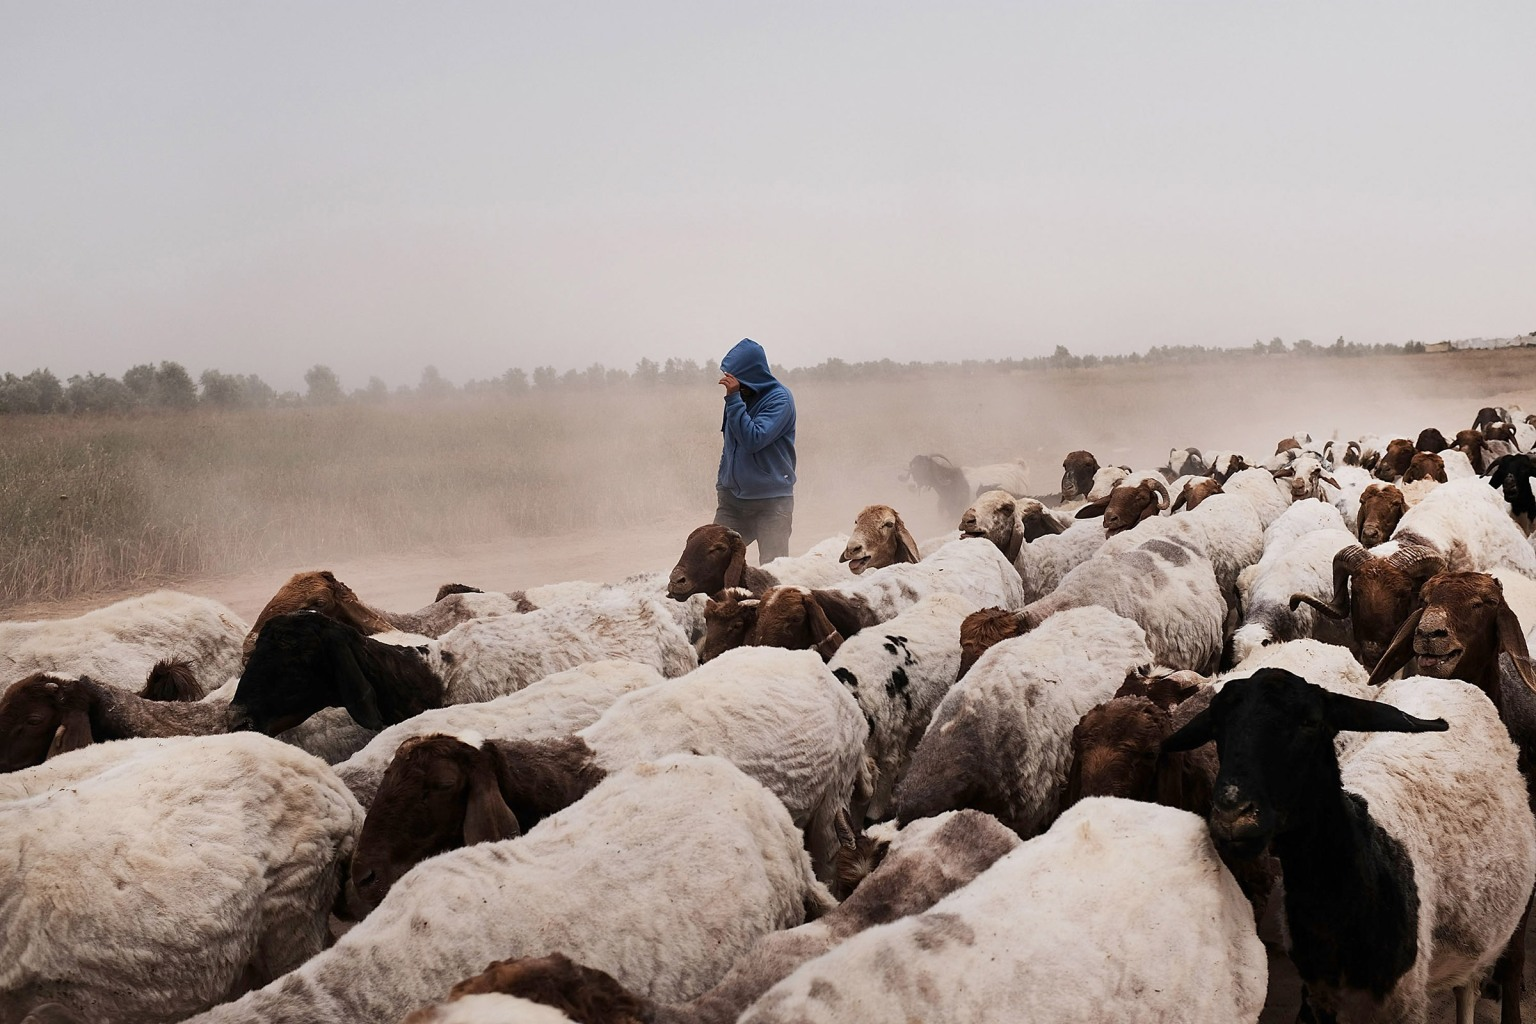 A teenager leads a flock of sheep along the Israeli border with Gaza on May 10. Spencer Platt/Getty Images